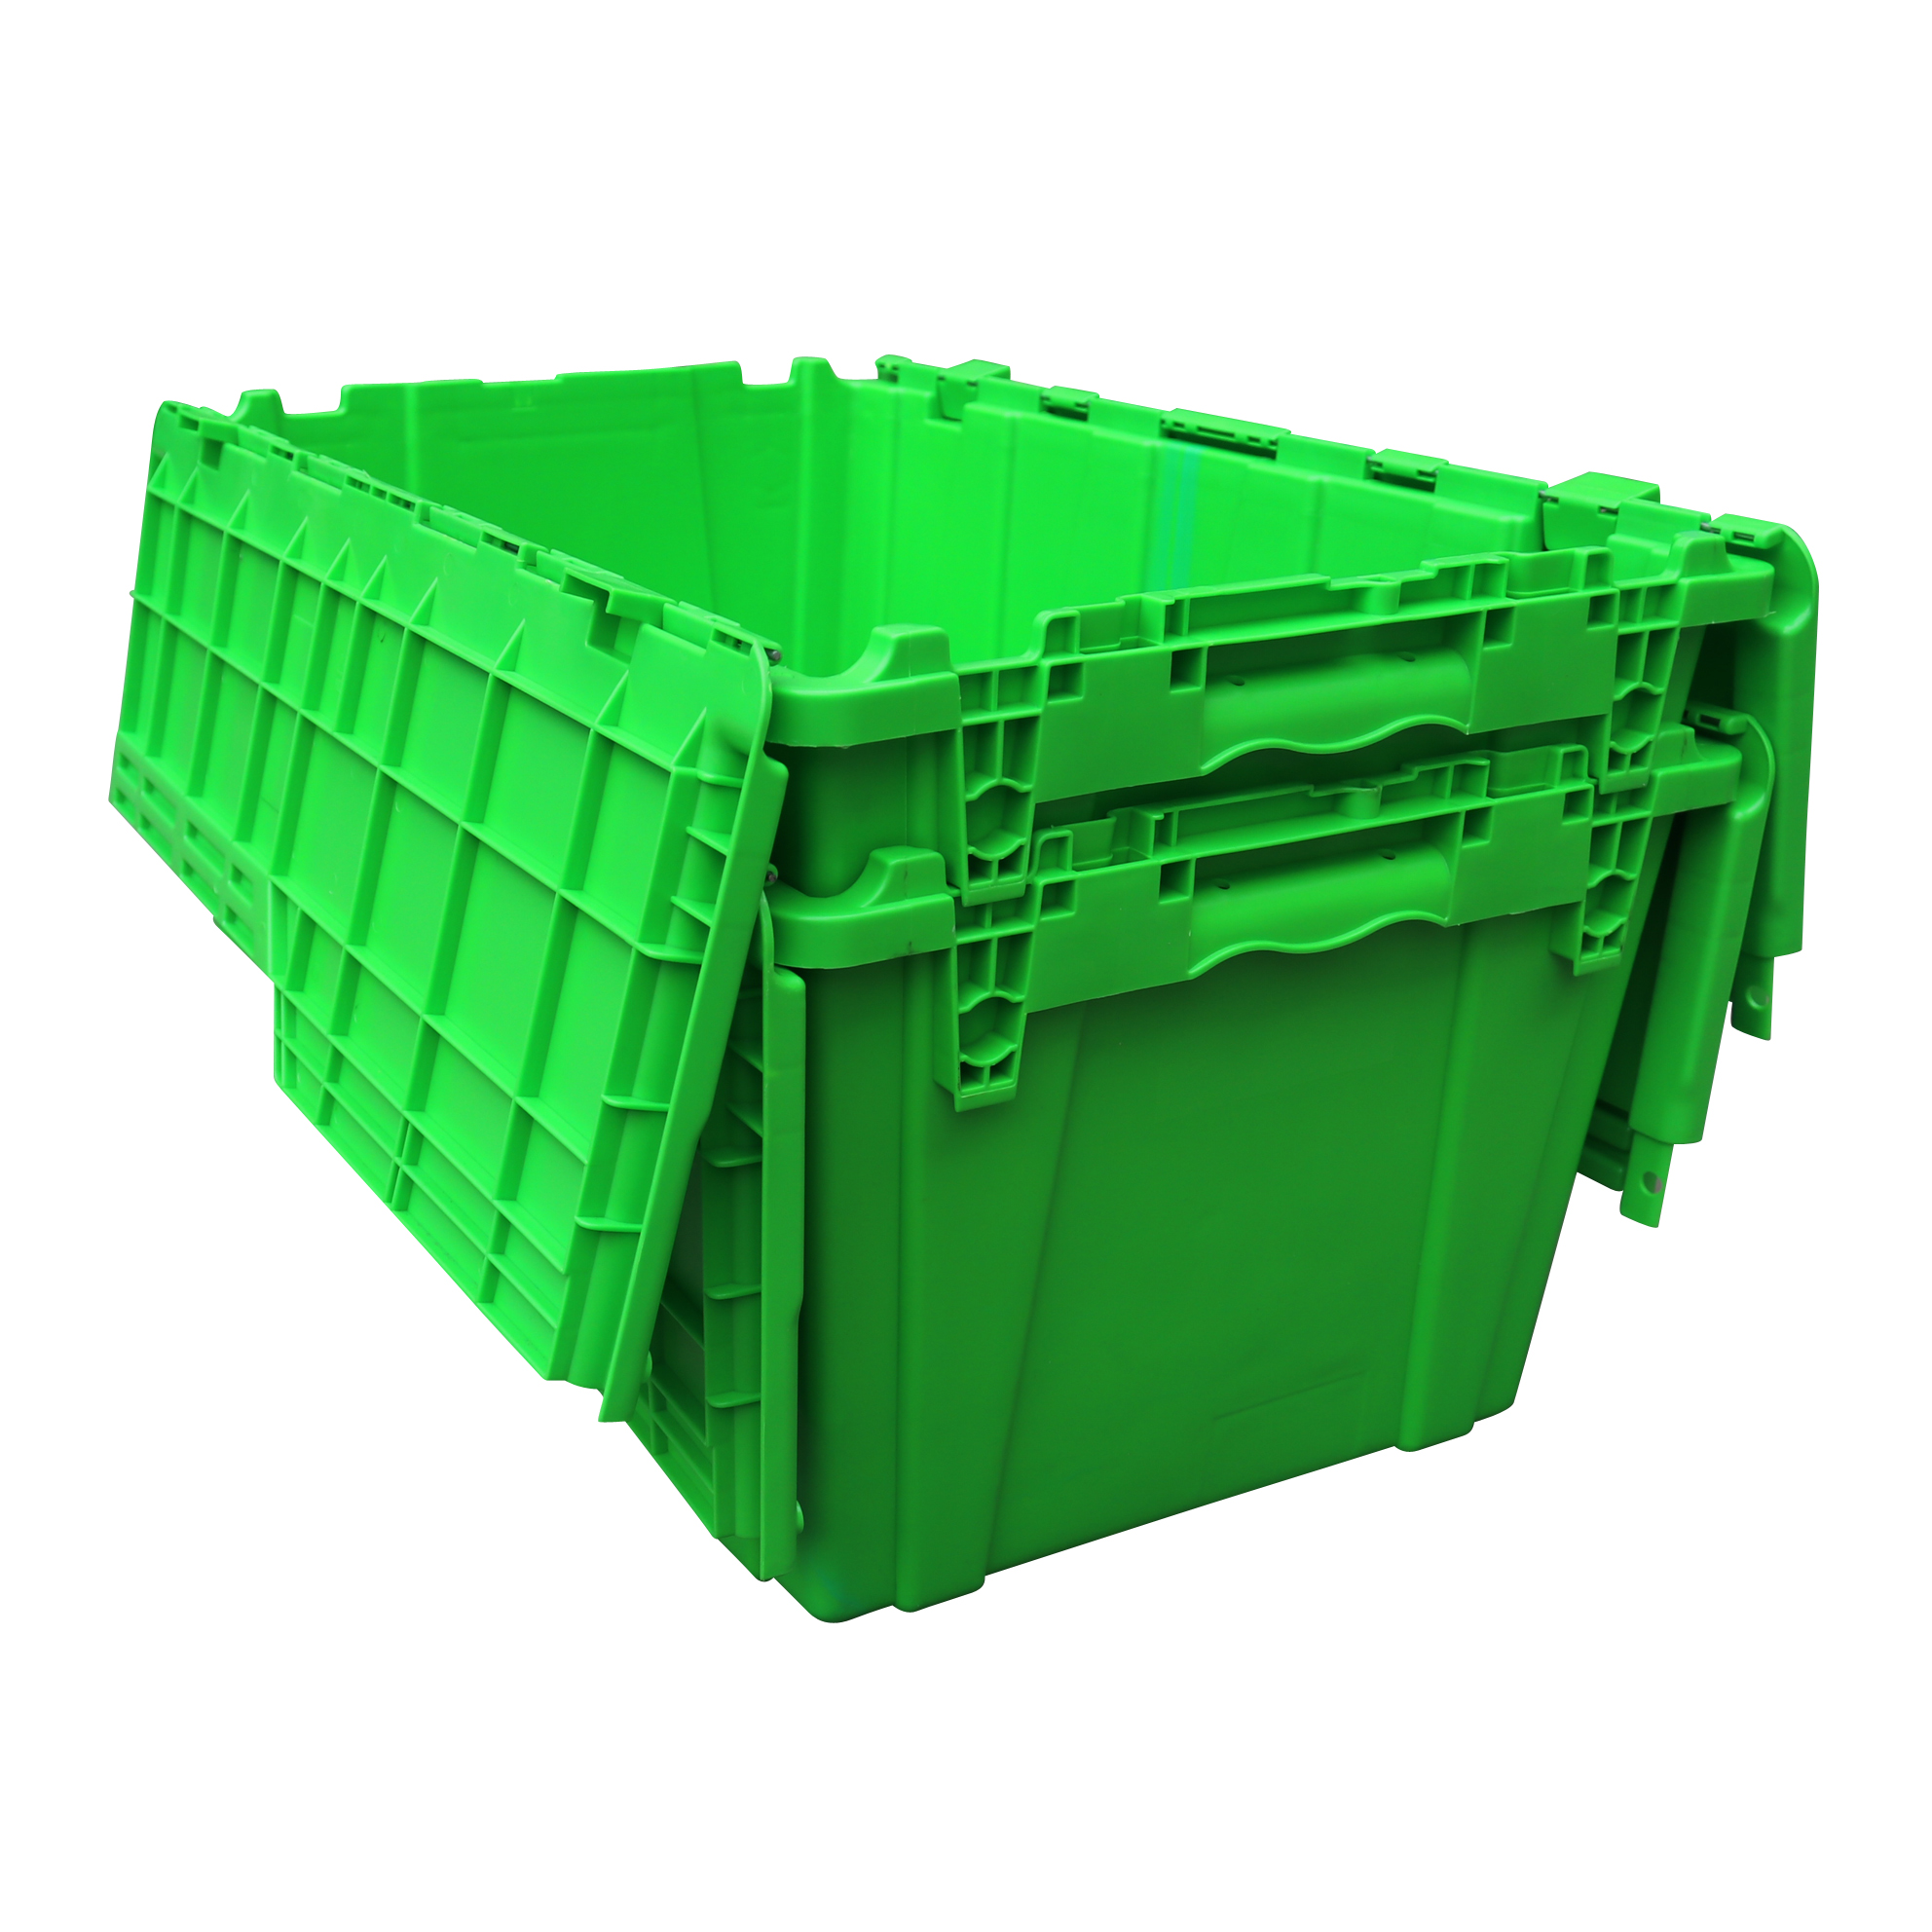 680*430*320mm Plastic Moving Crates with Dolly